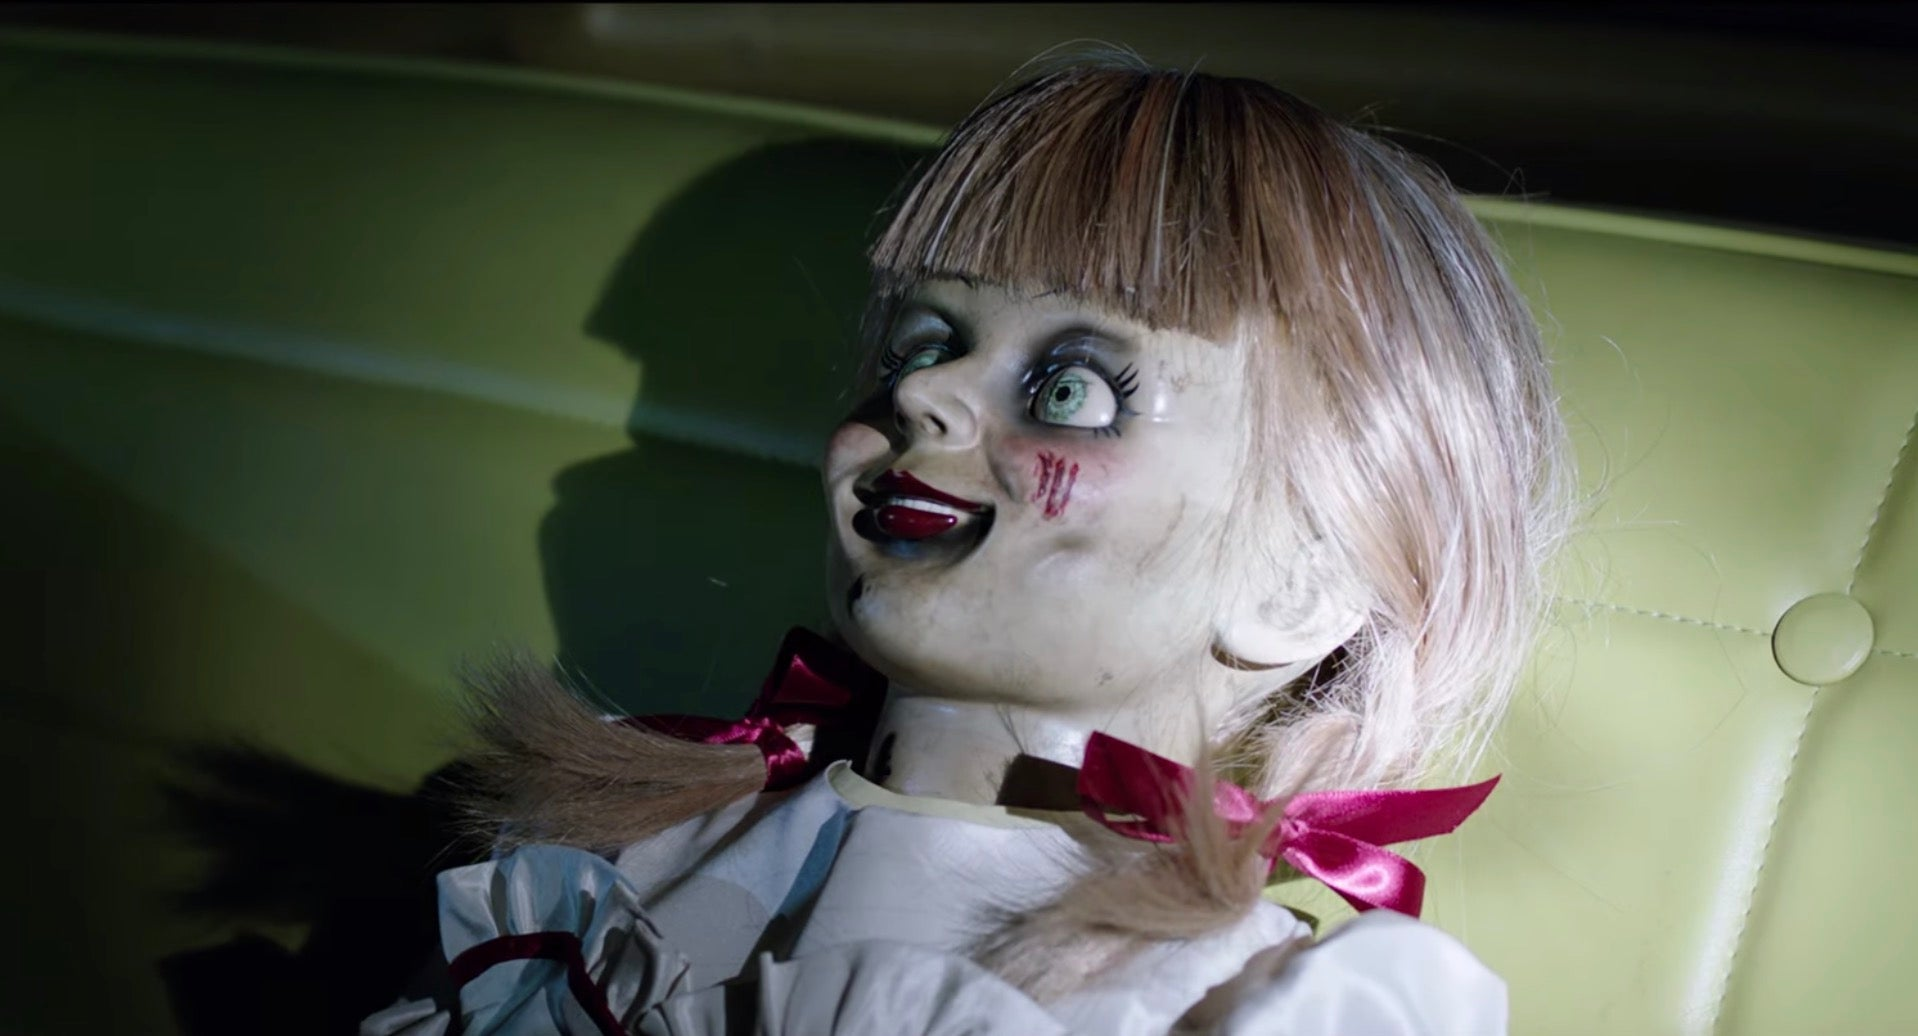 Annabelle Is On A Rampage In The Latest Trailer For Annabelle Comes Home